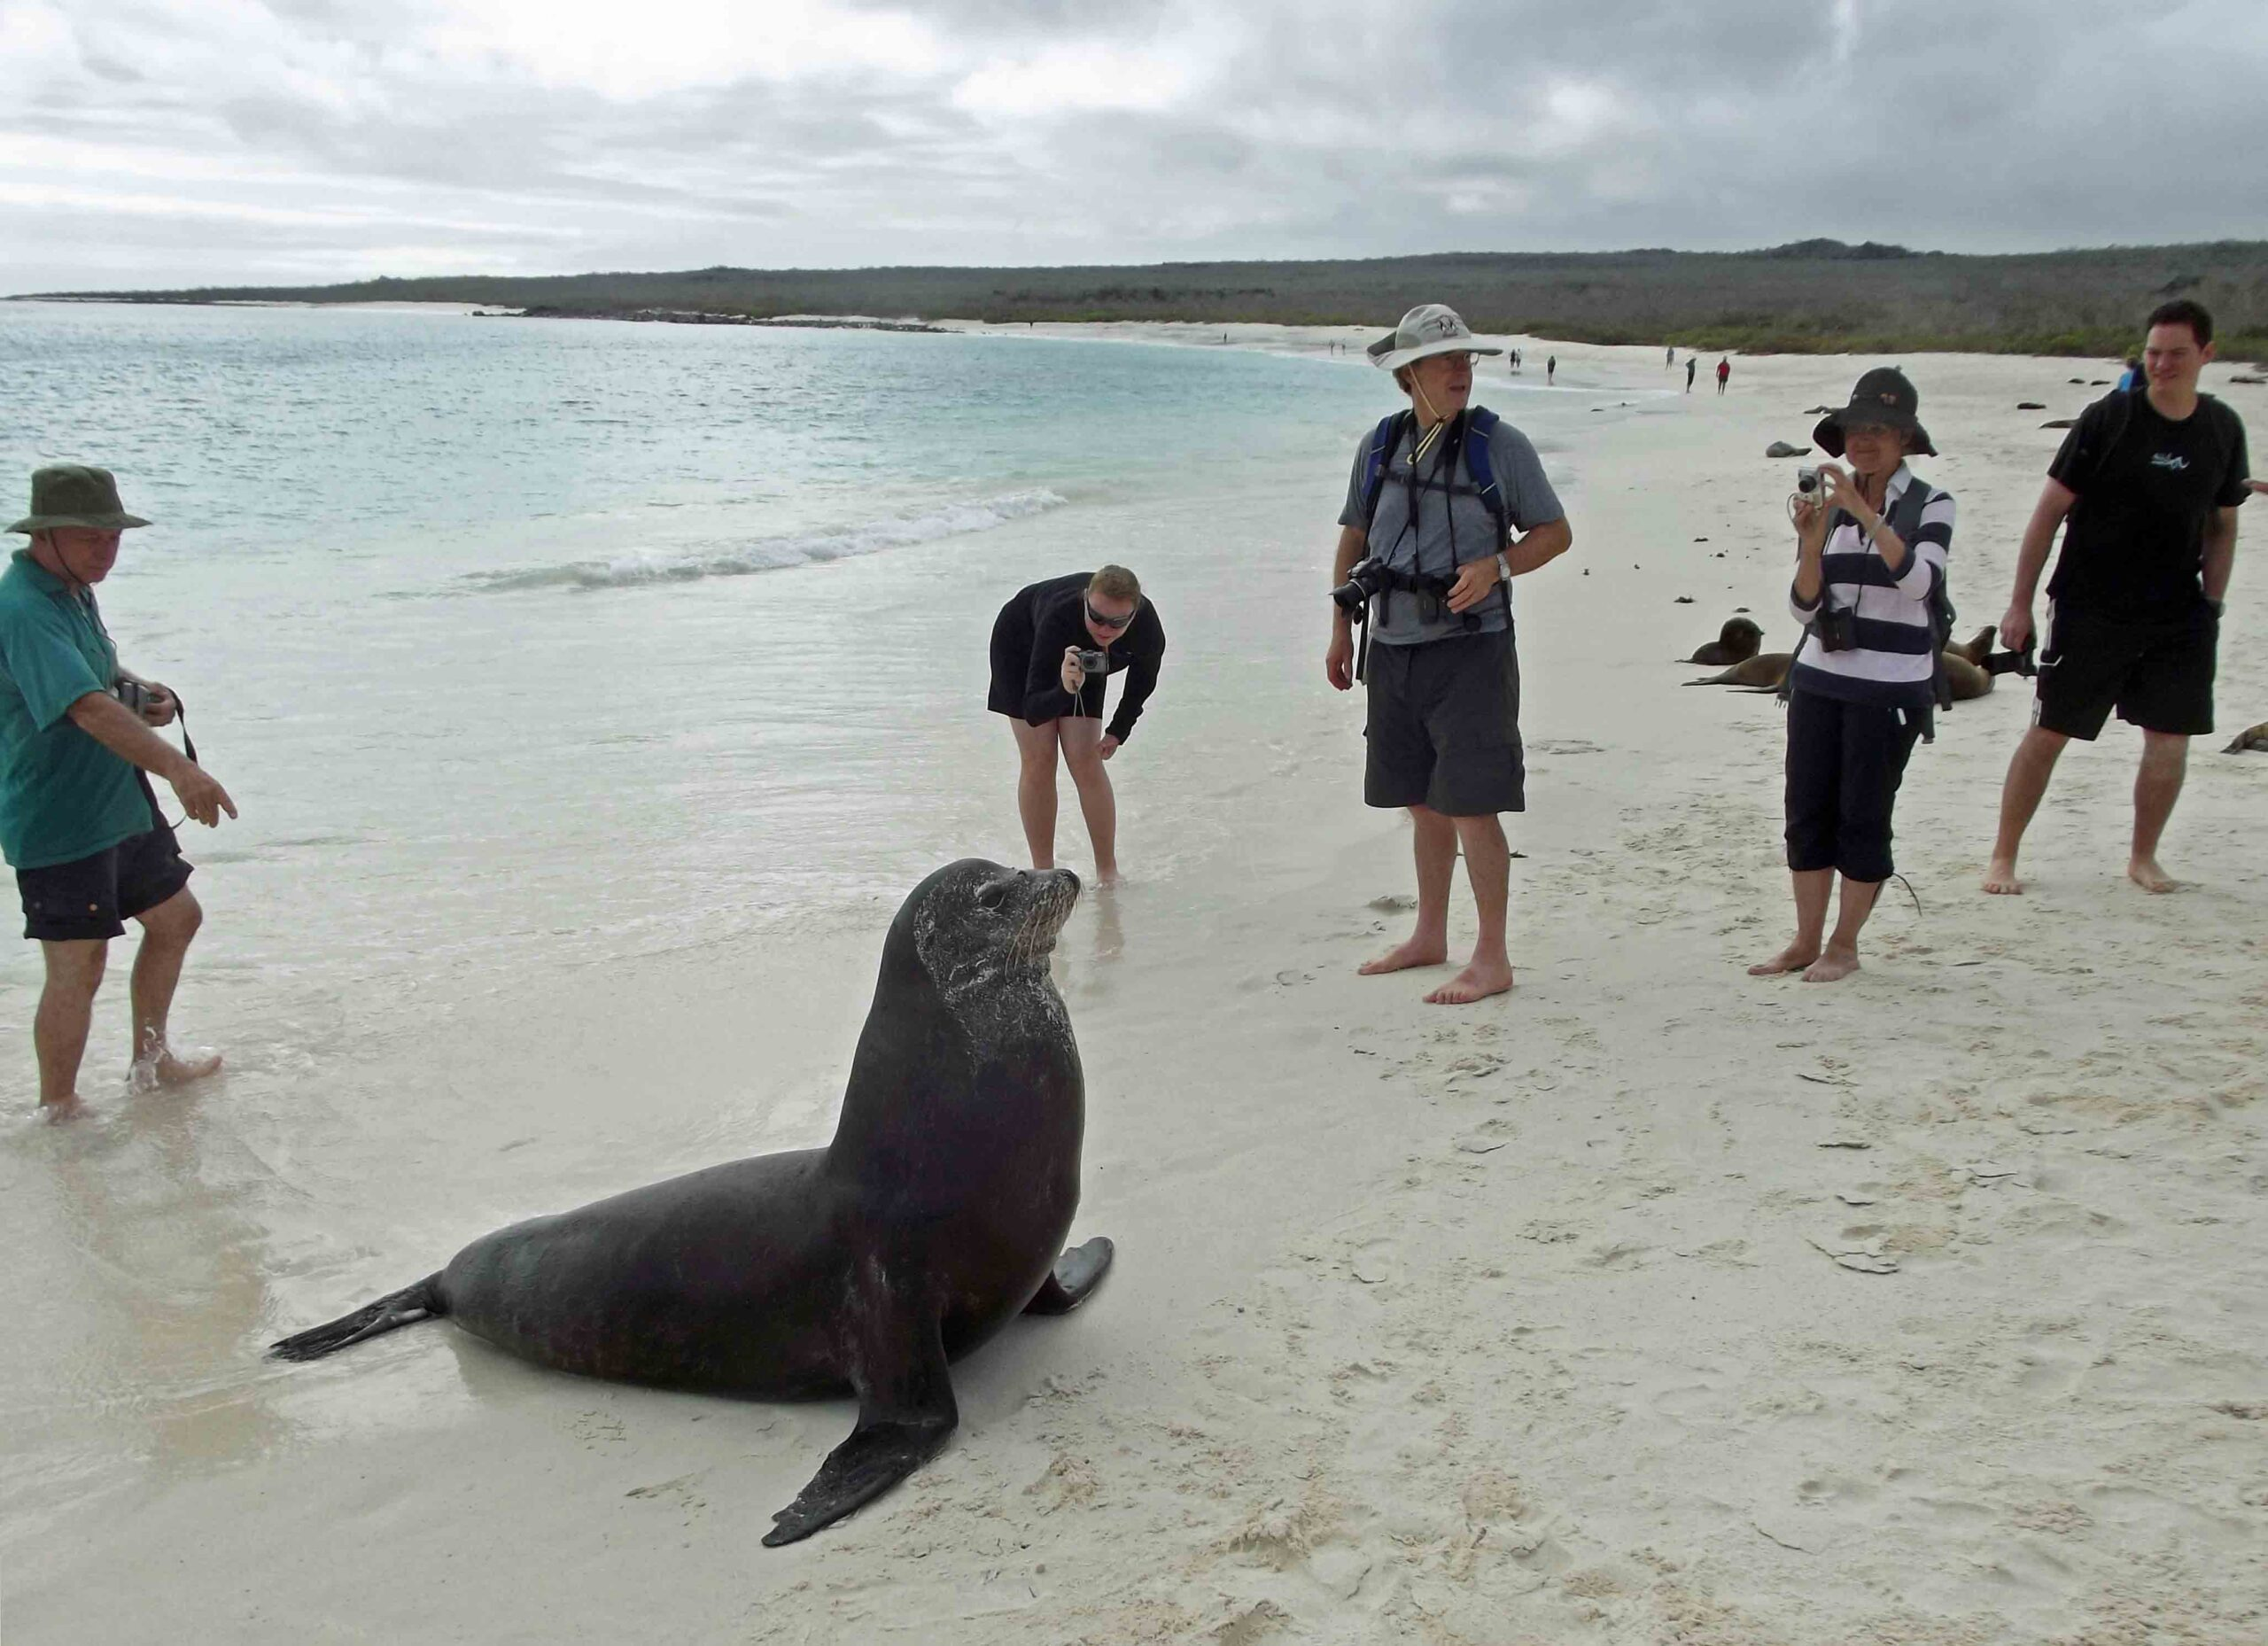 Large seal and small group of people on a beach